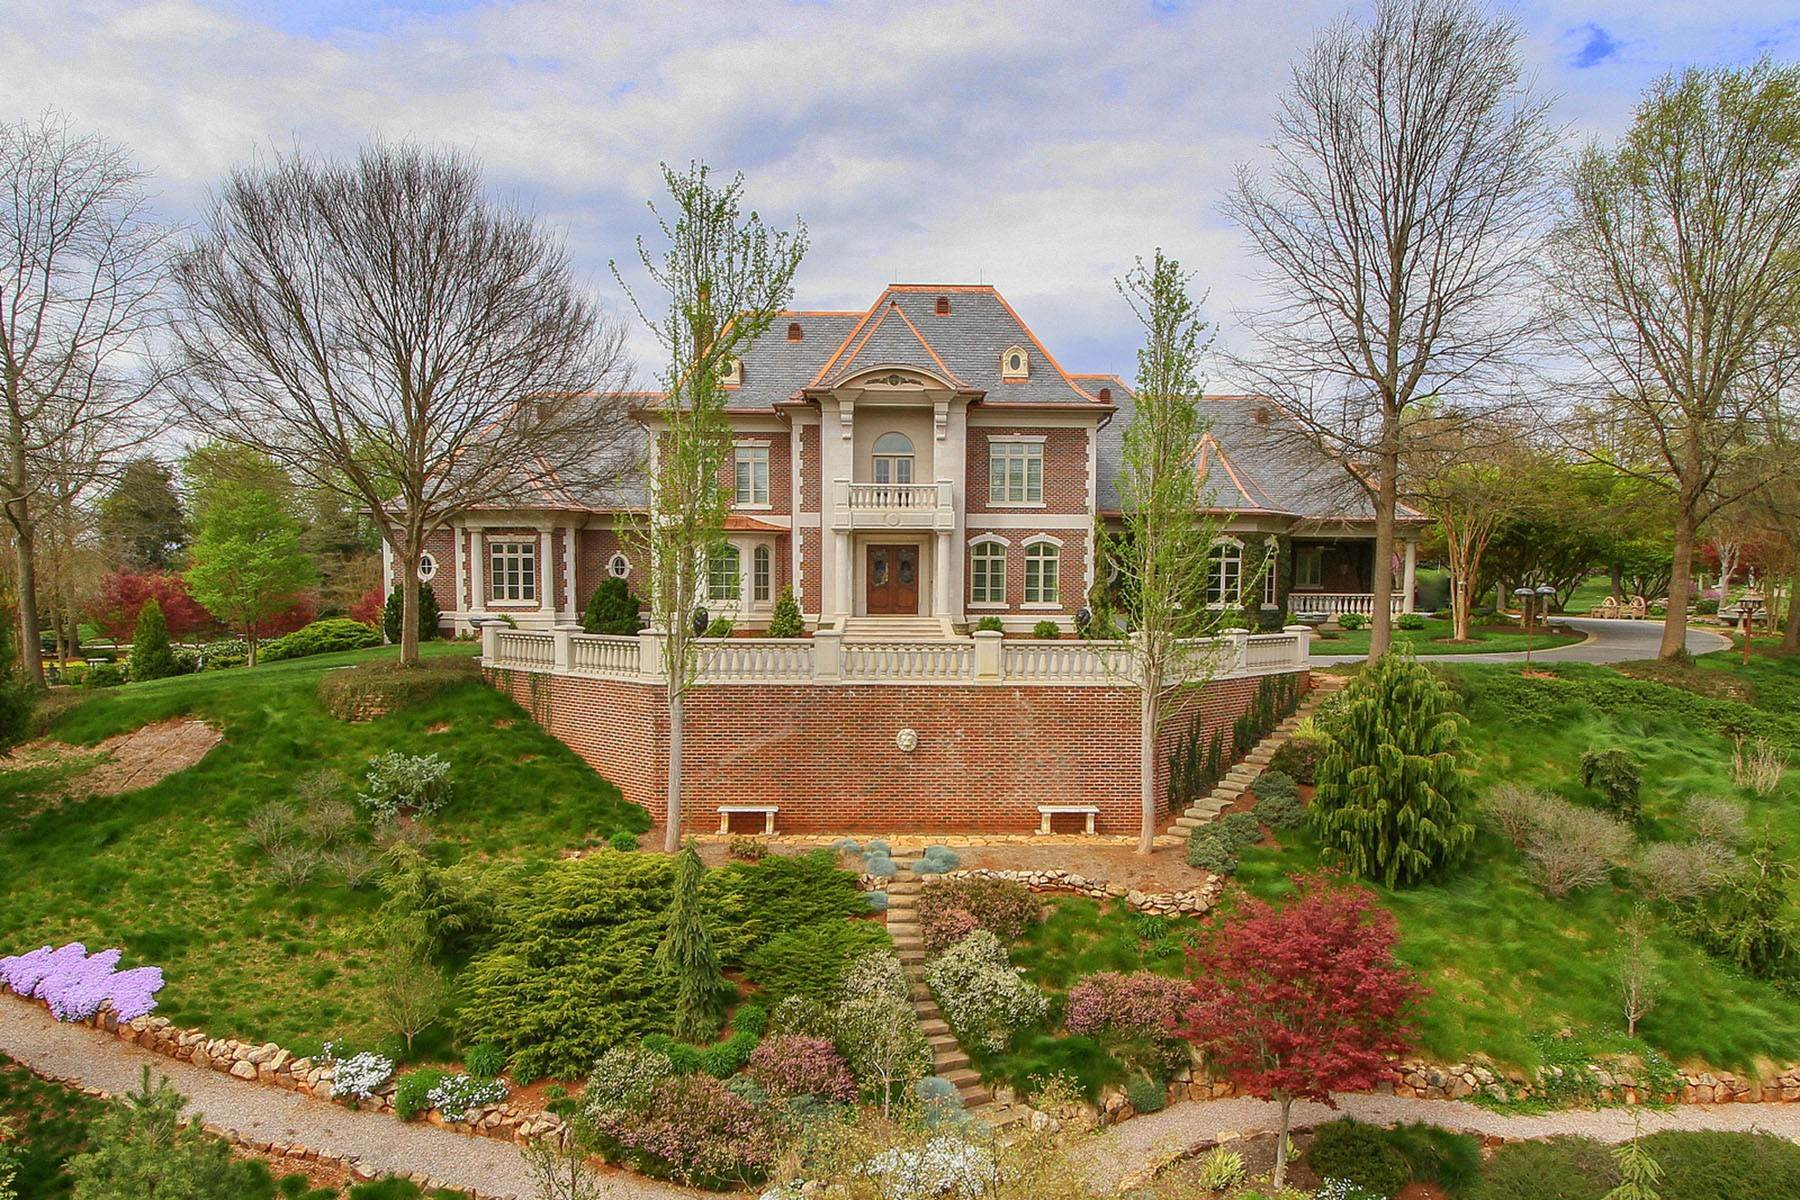 Single Family Homes for Sale at Majestic Estate On 10 Private Acres 1909 Rudder Lane Knoxville, Tennessee 37919 United States